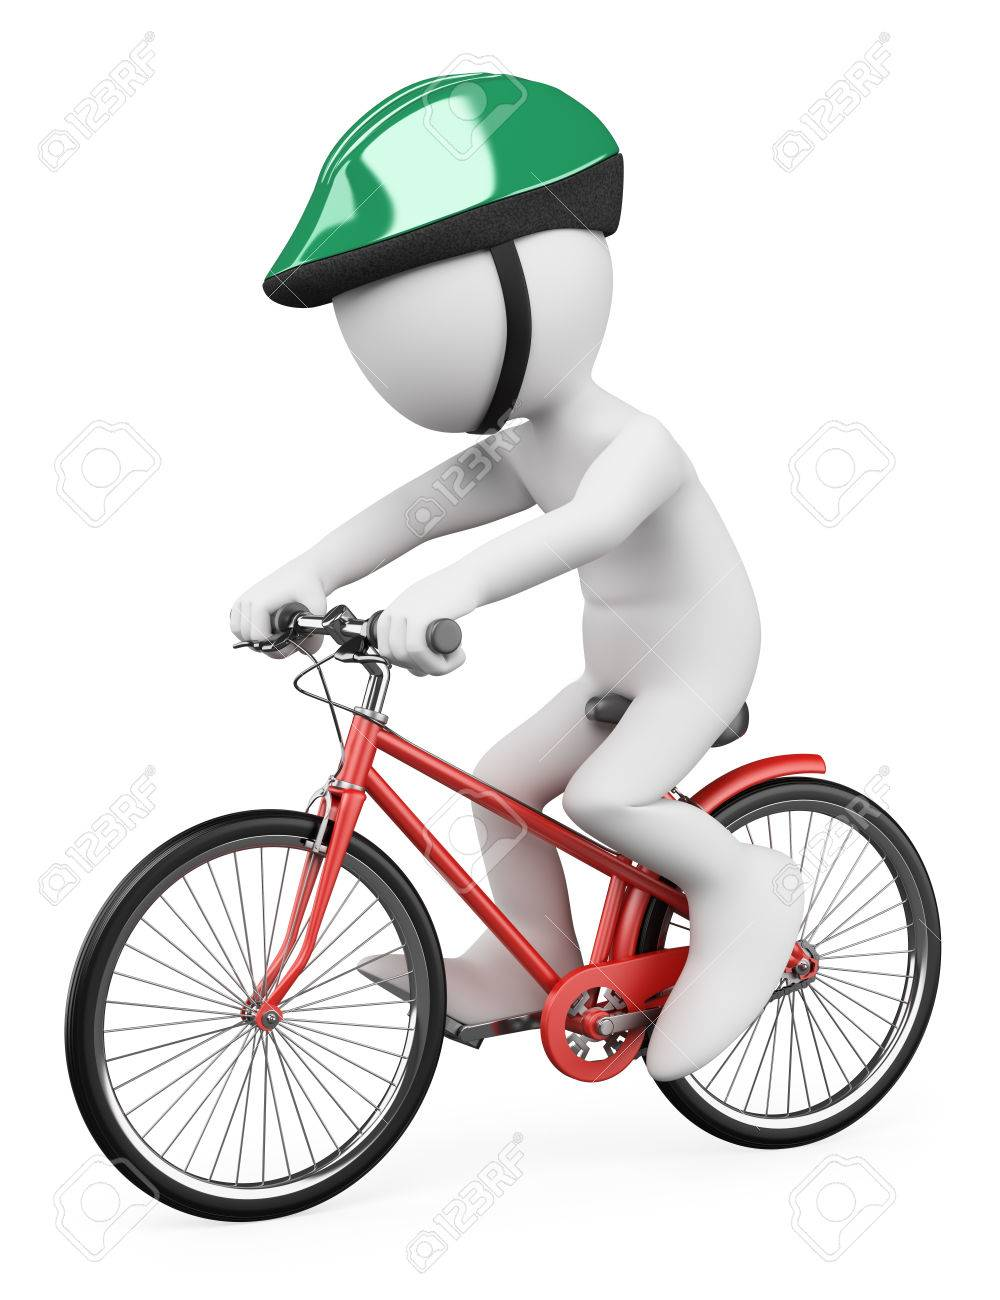 3d white people  Man riding a red bicycle with a green helmet